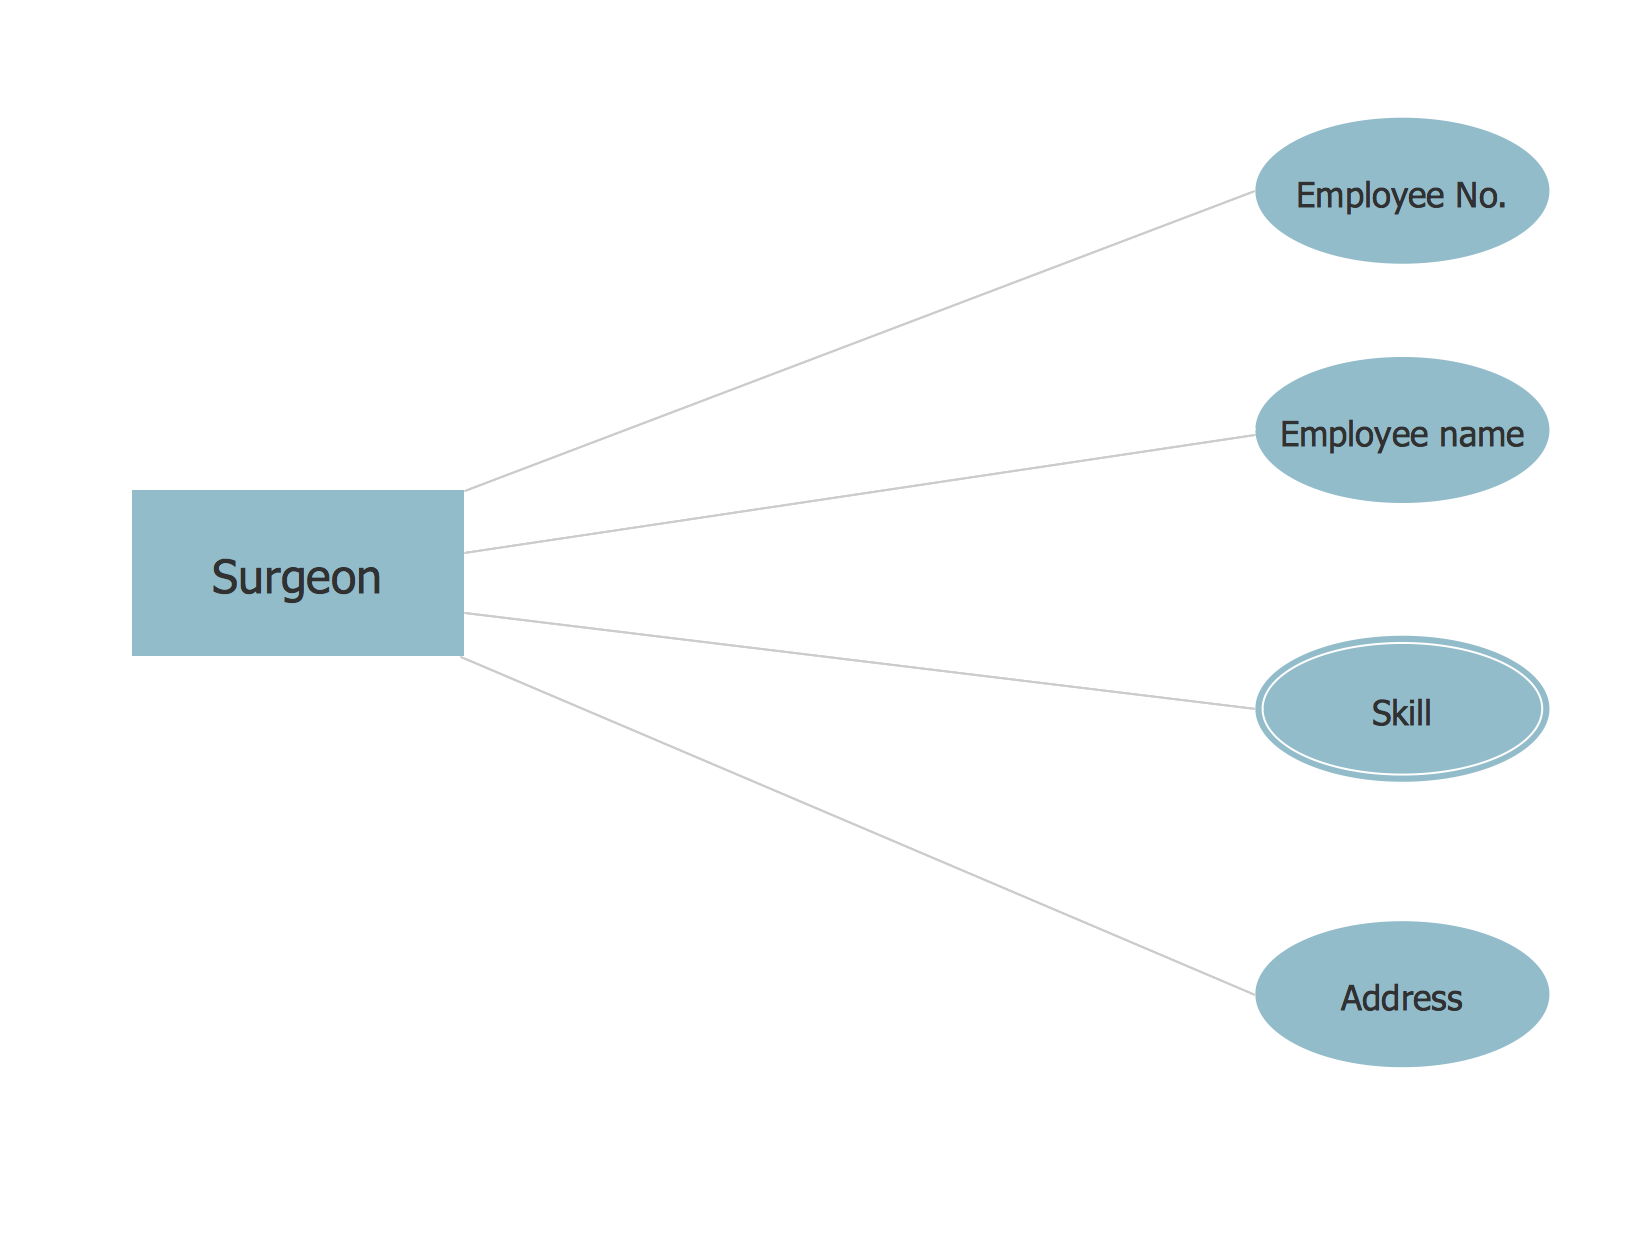 Chen ERD Diagram - Database of a Surgeon